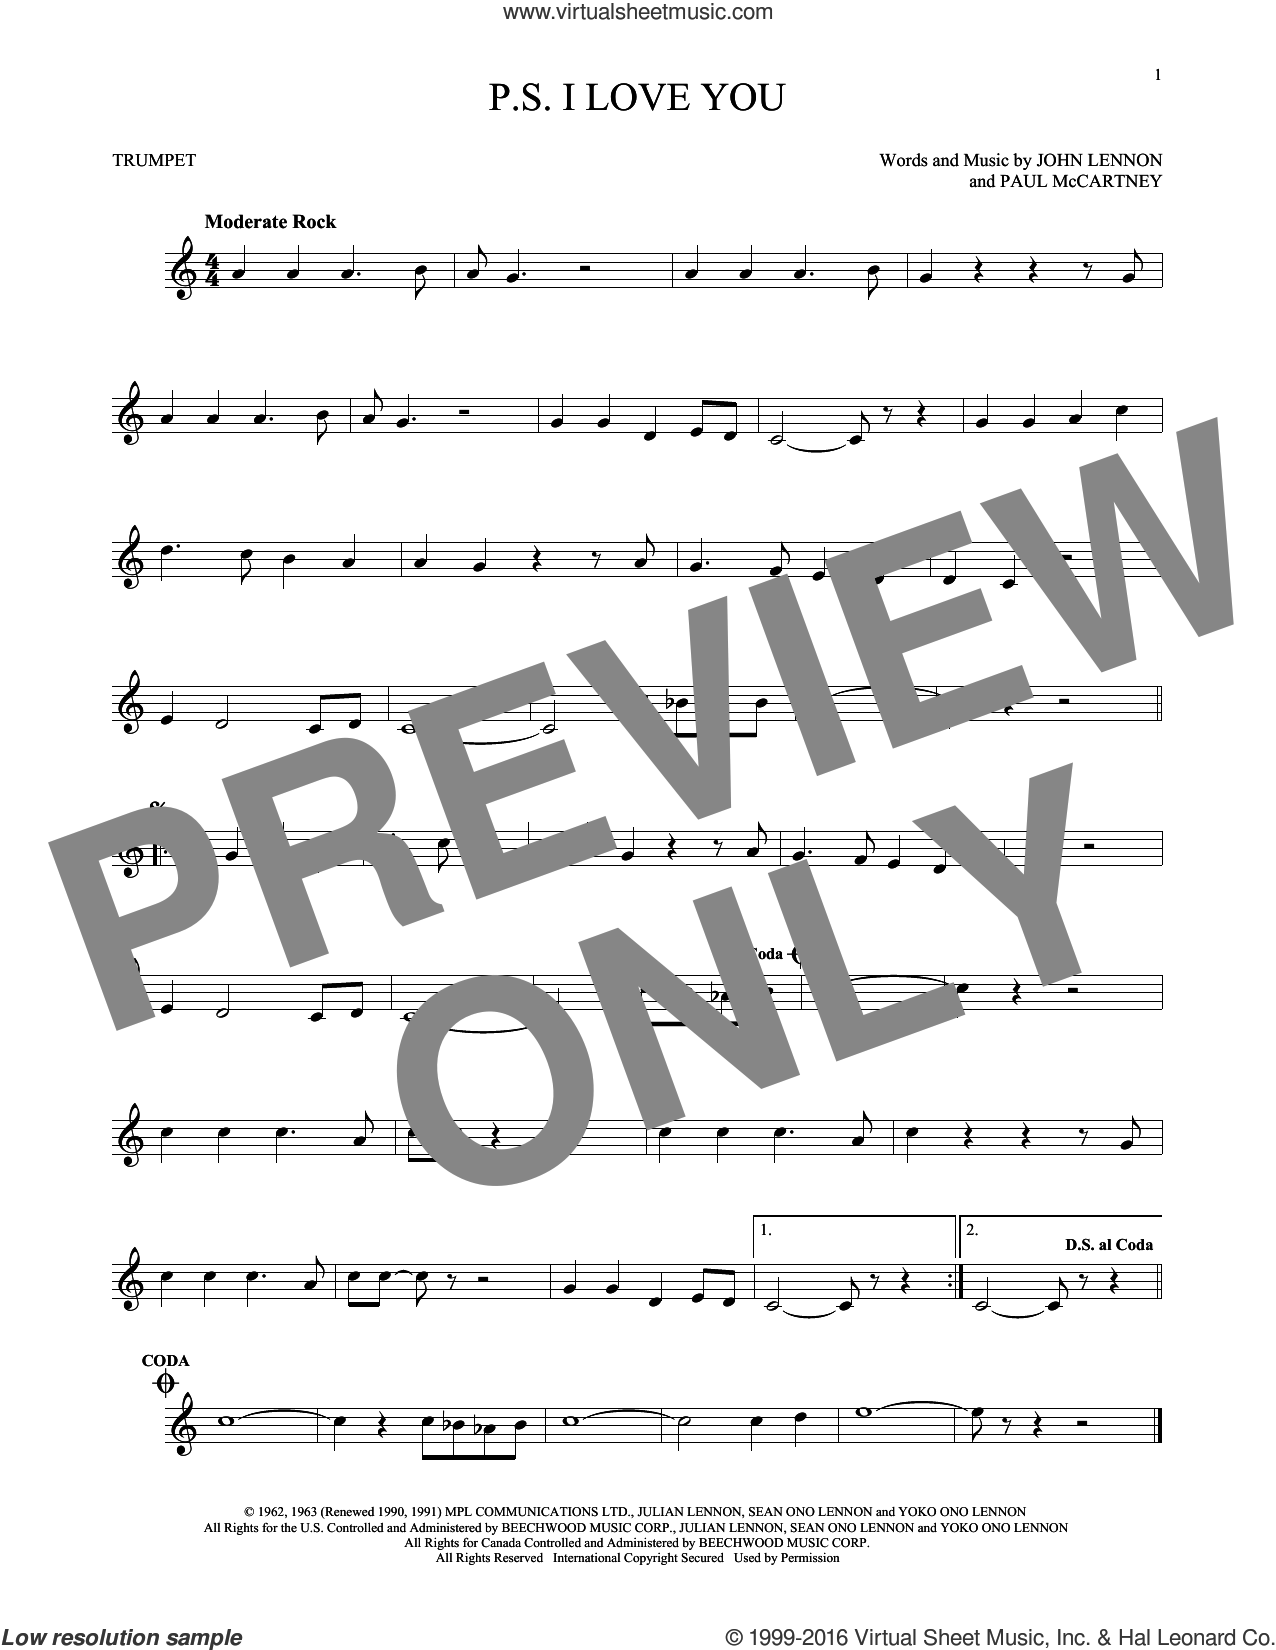 P.S. I Love You sheet music for trumpet solo by Paul McCartney